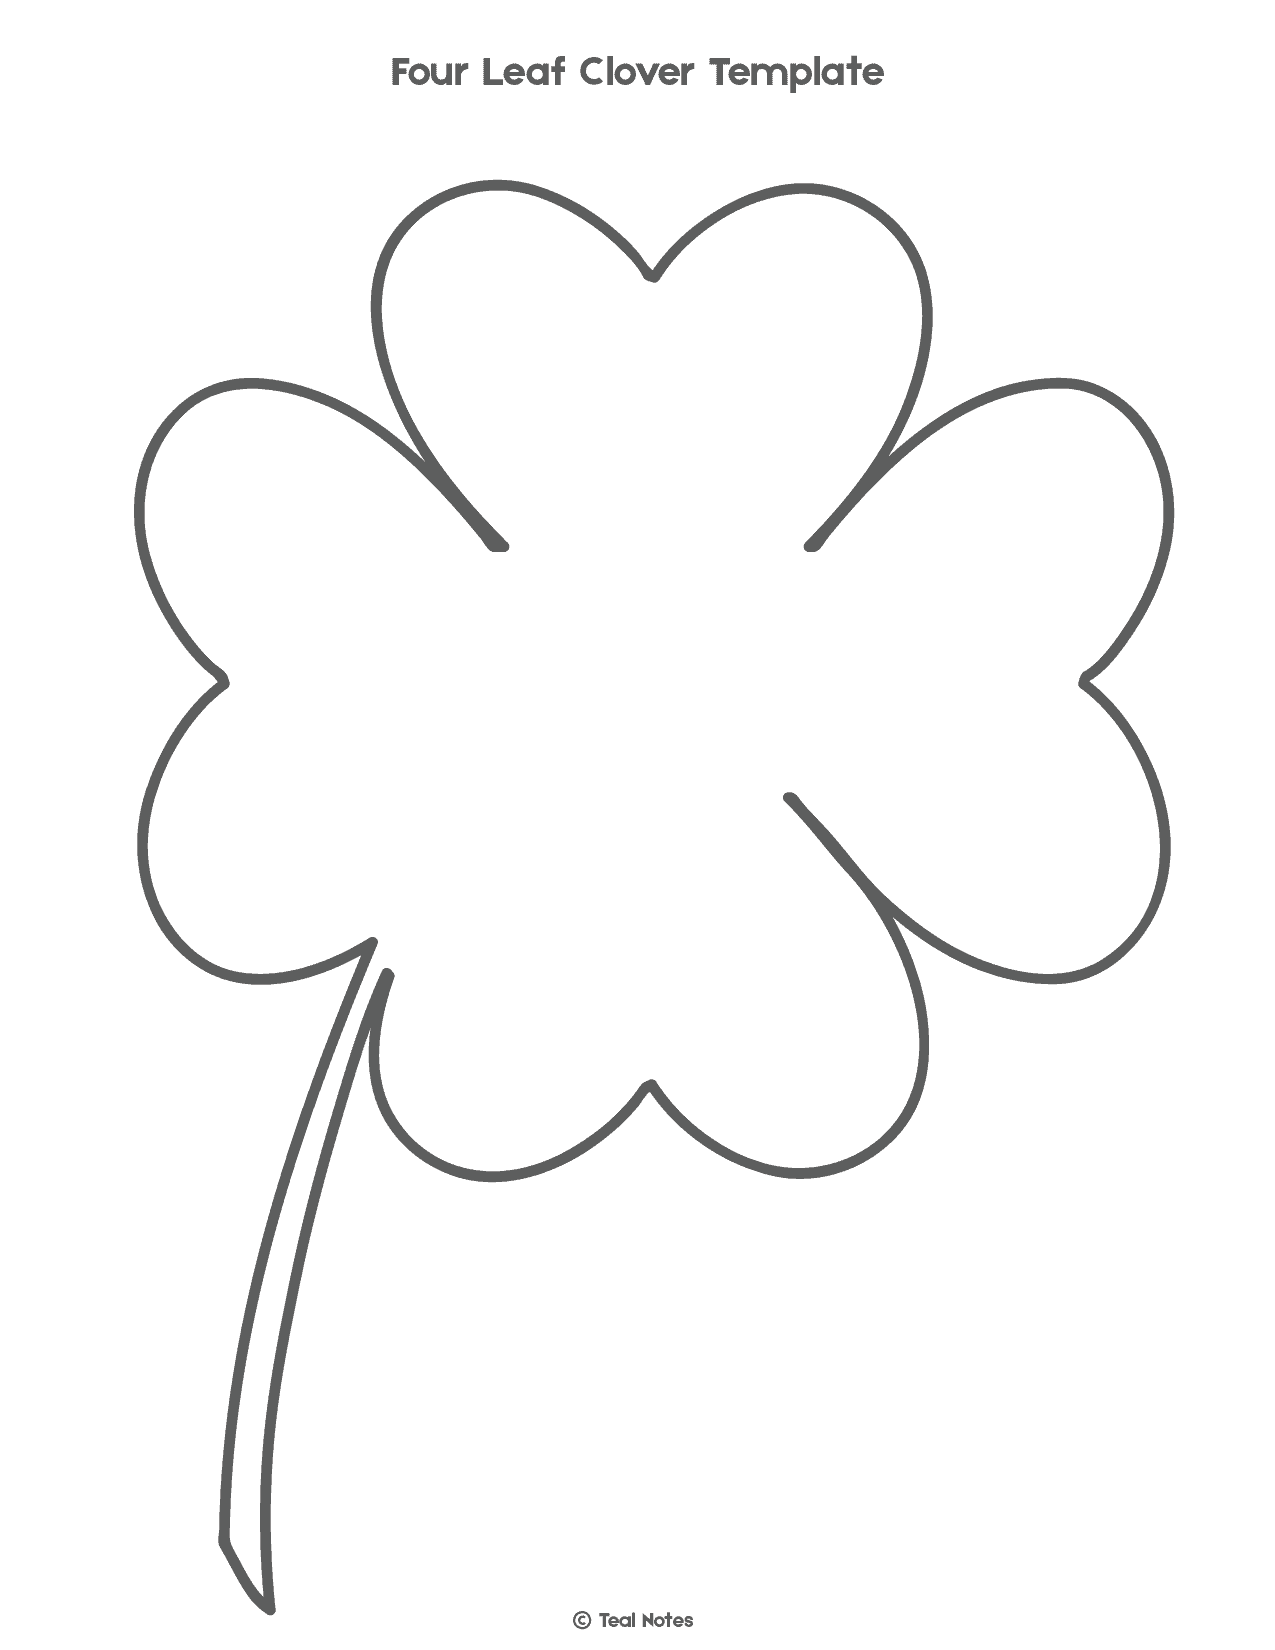 photo regarding Four Leaf Clover Printable Template named 4 Leaf Clover Template: Absolutely free Shamrock Template Printable